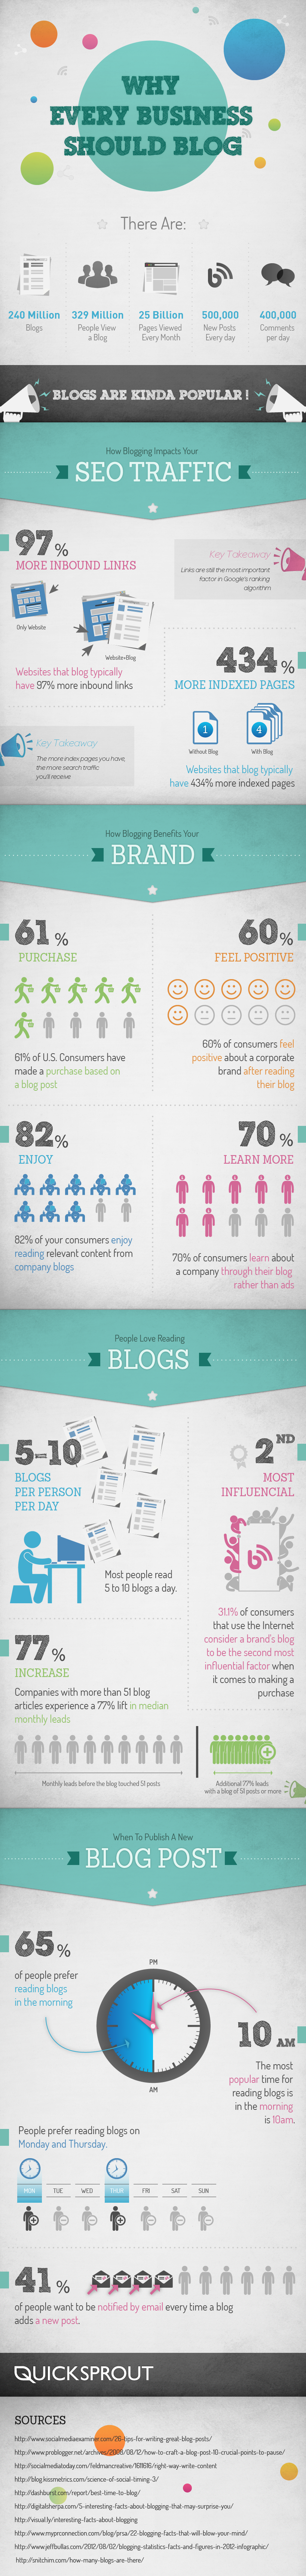 How Blogging Impacts Business [infographic]